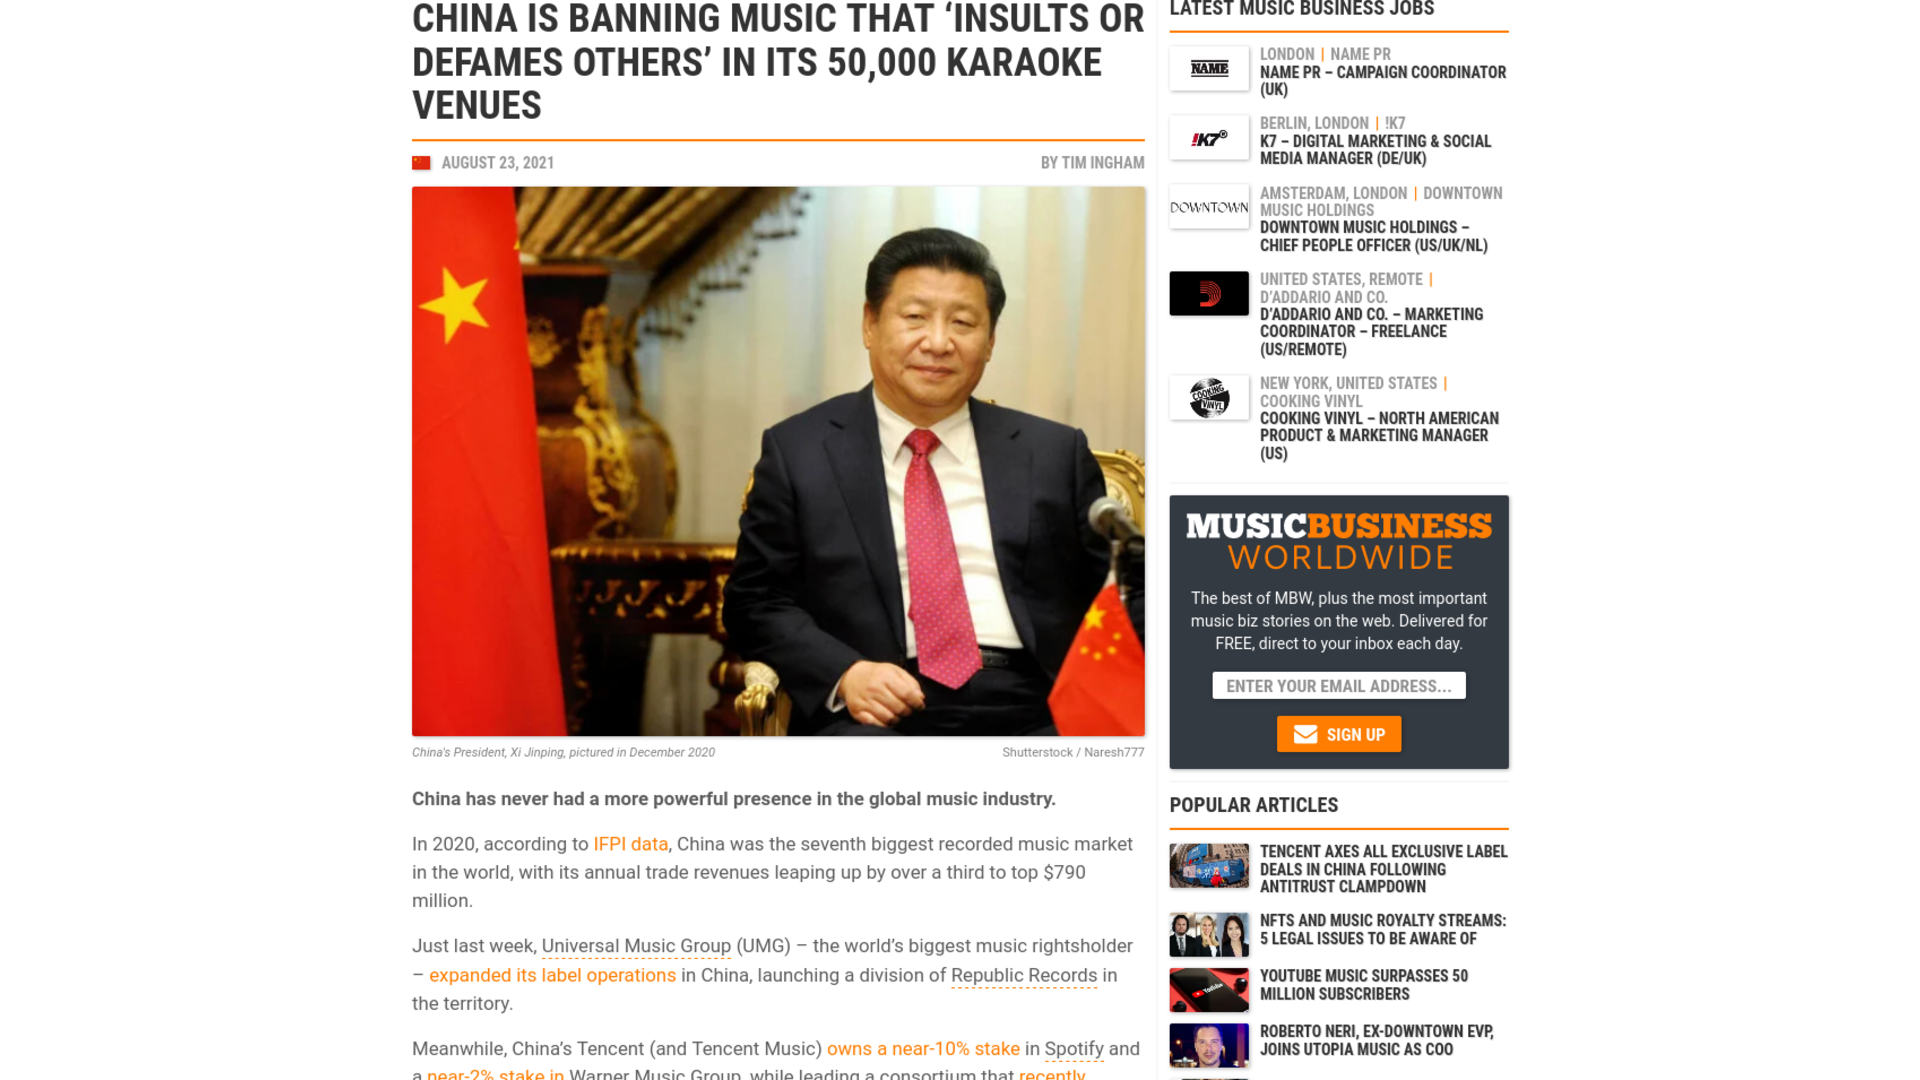 Fairness Rocks News China is banning music that 'insults or defames others' in its 50,000 karaoke venues